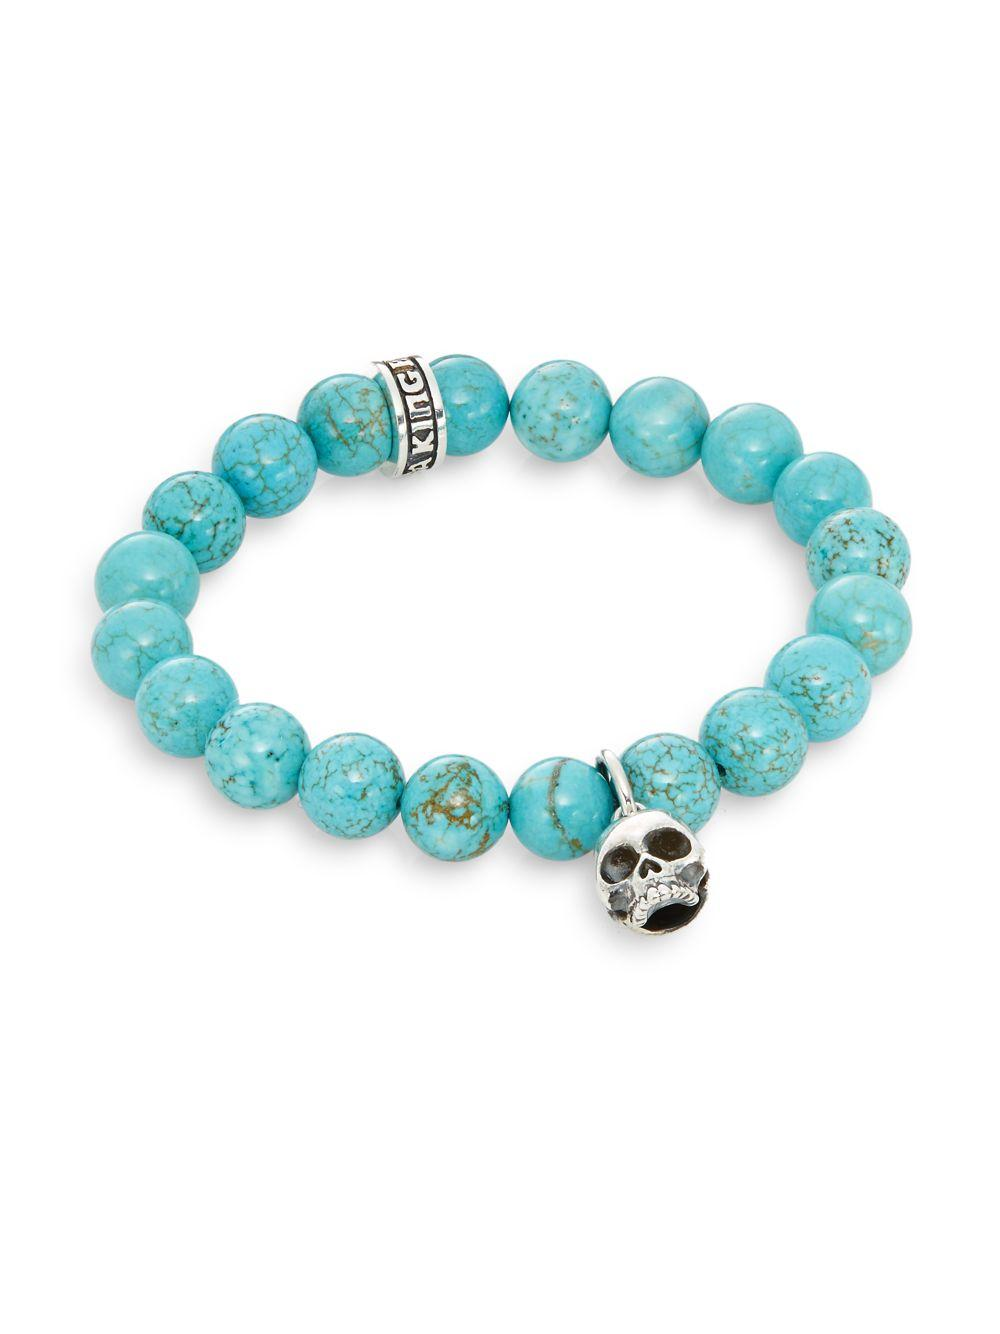 King baby studio turquoise sterling silver beaded skull for King baby jewelry sale